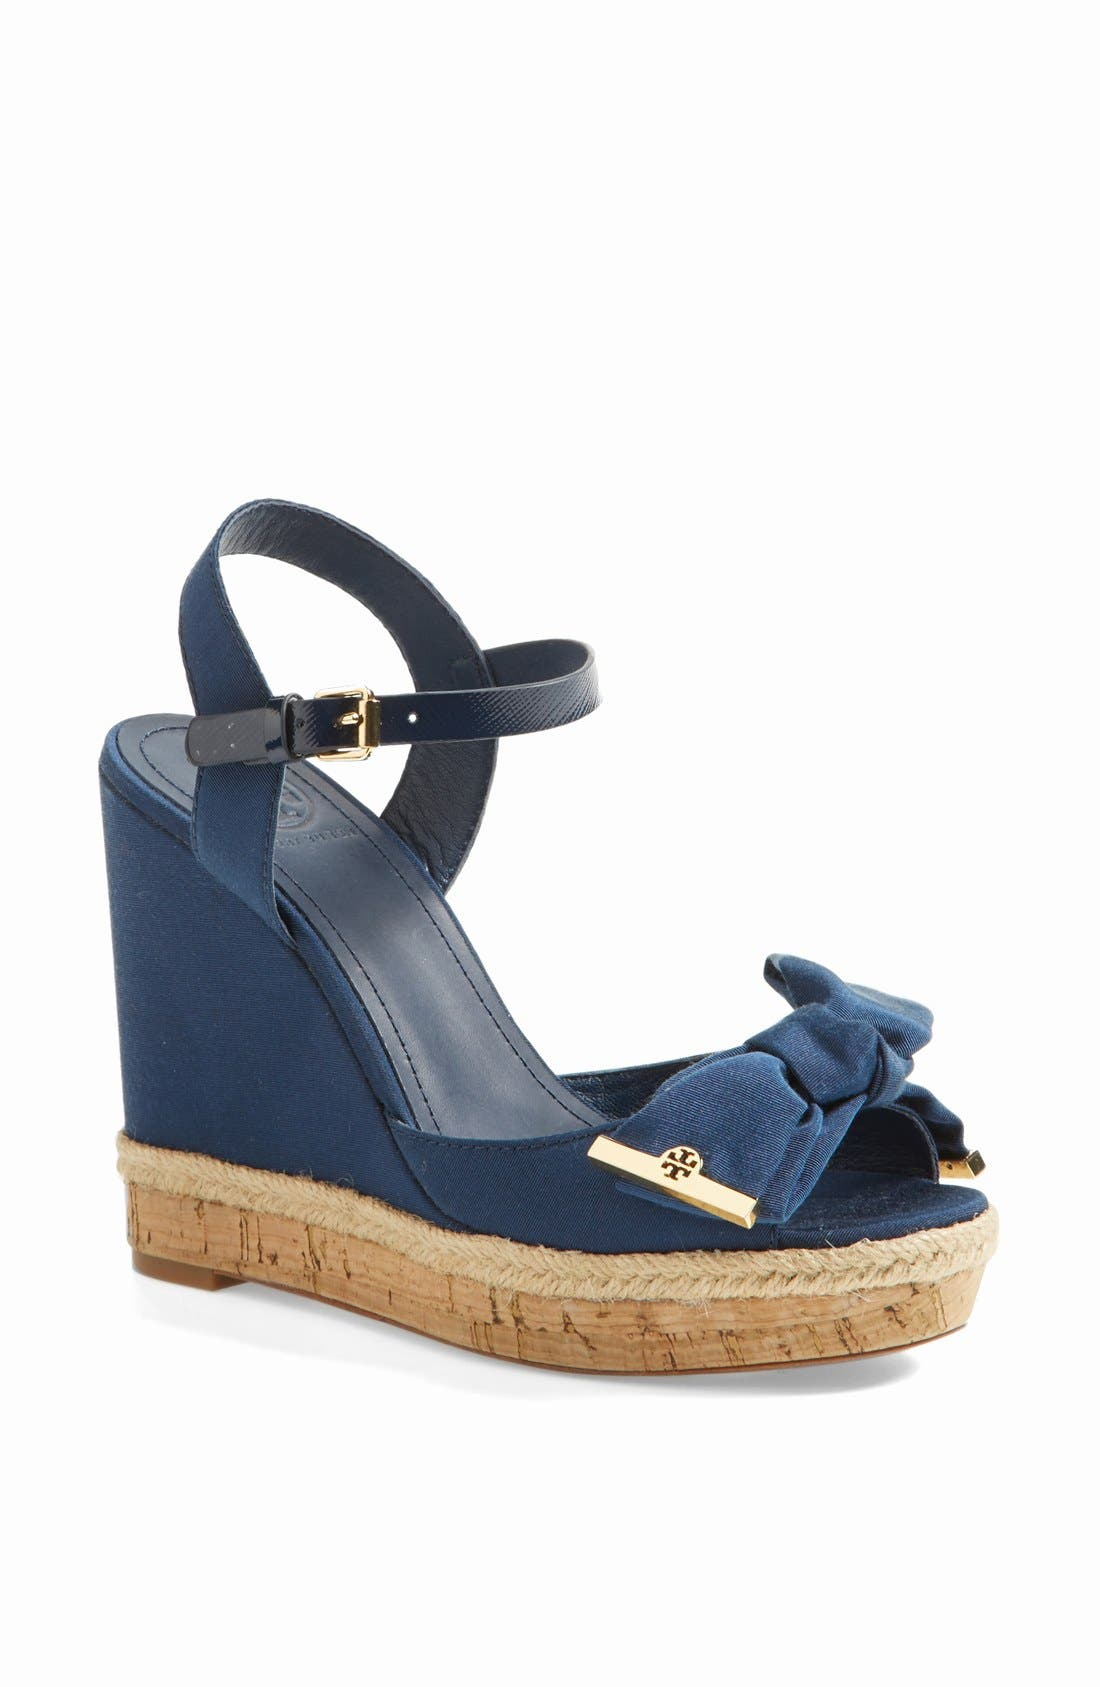 Main Image - Tory Burch 'Penny' Wedge Sandal